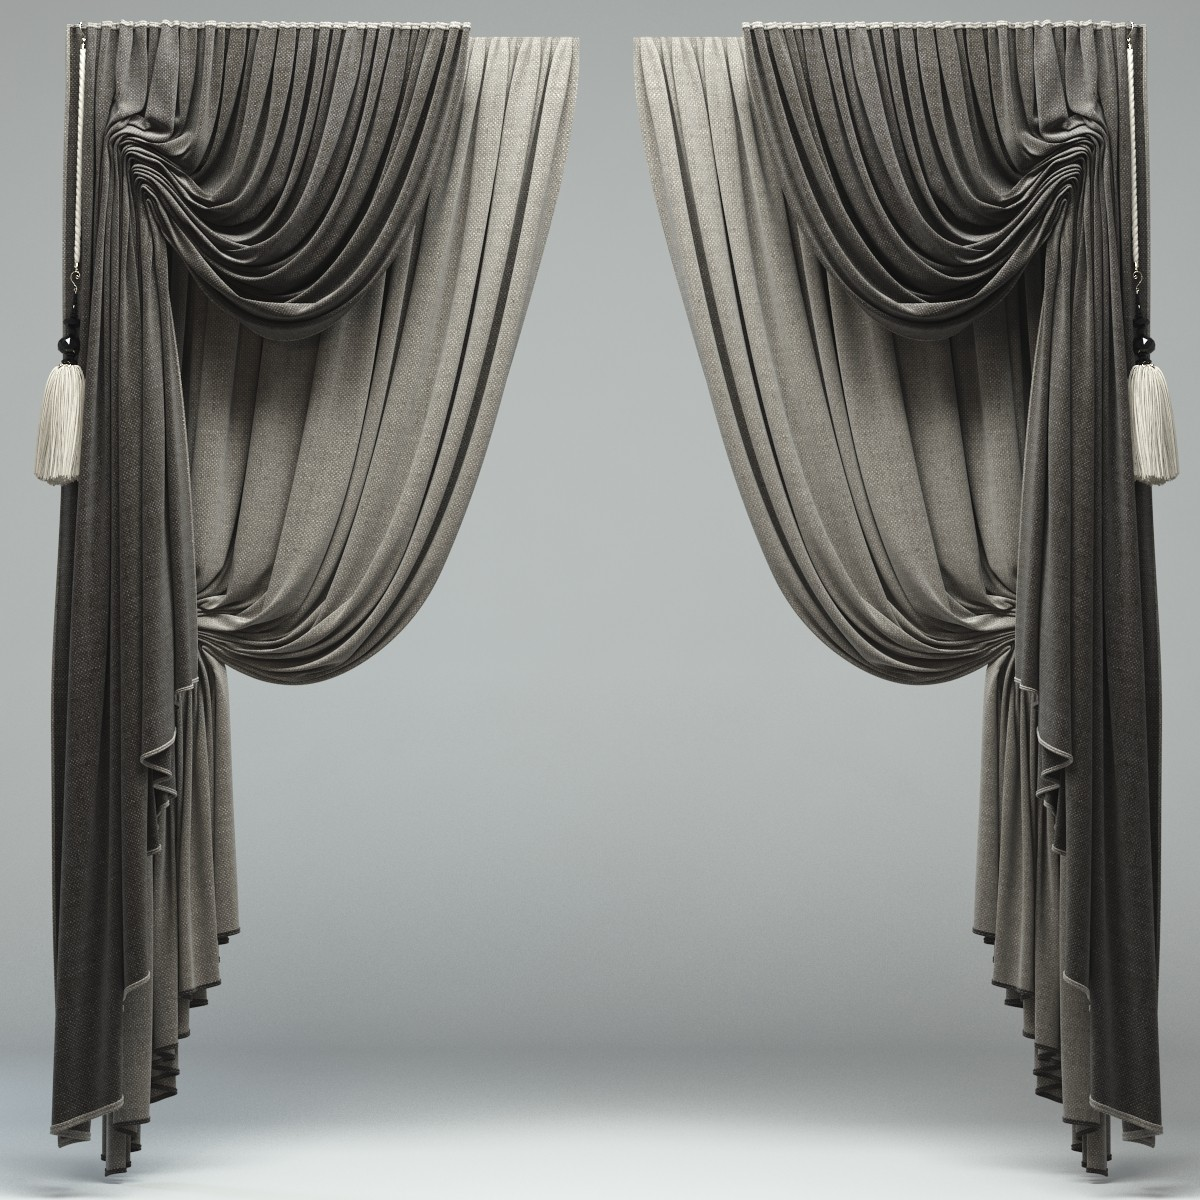 Curtain Designs elegant modern curtain designs and ideas for decorating home